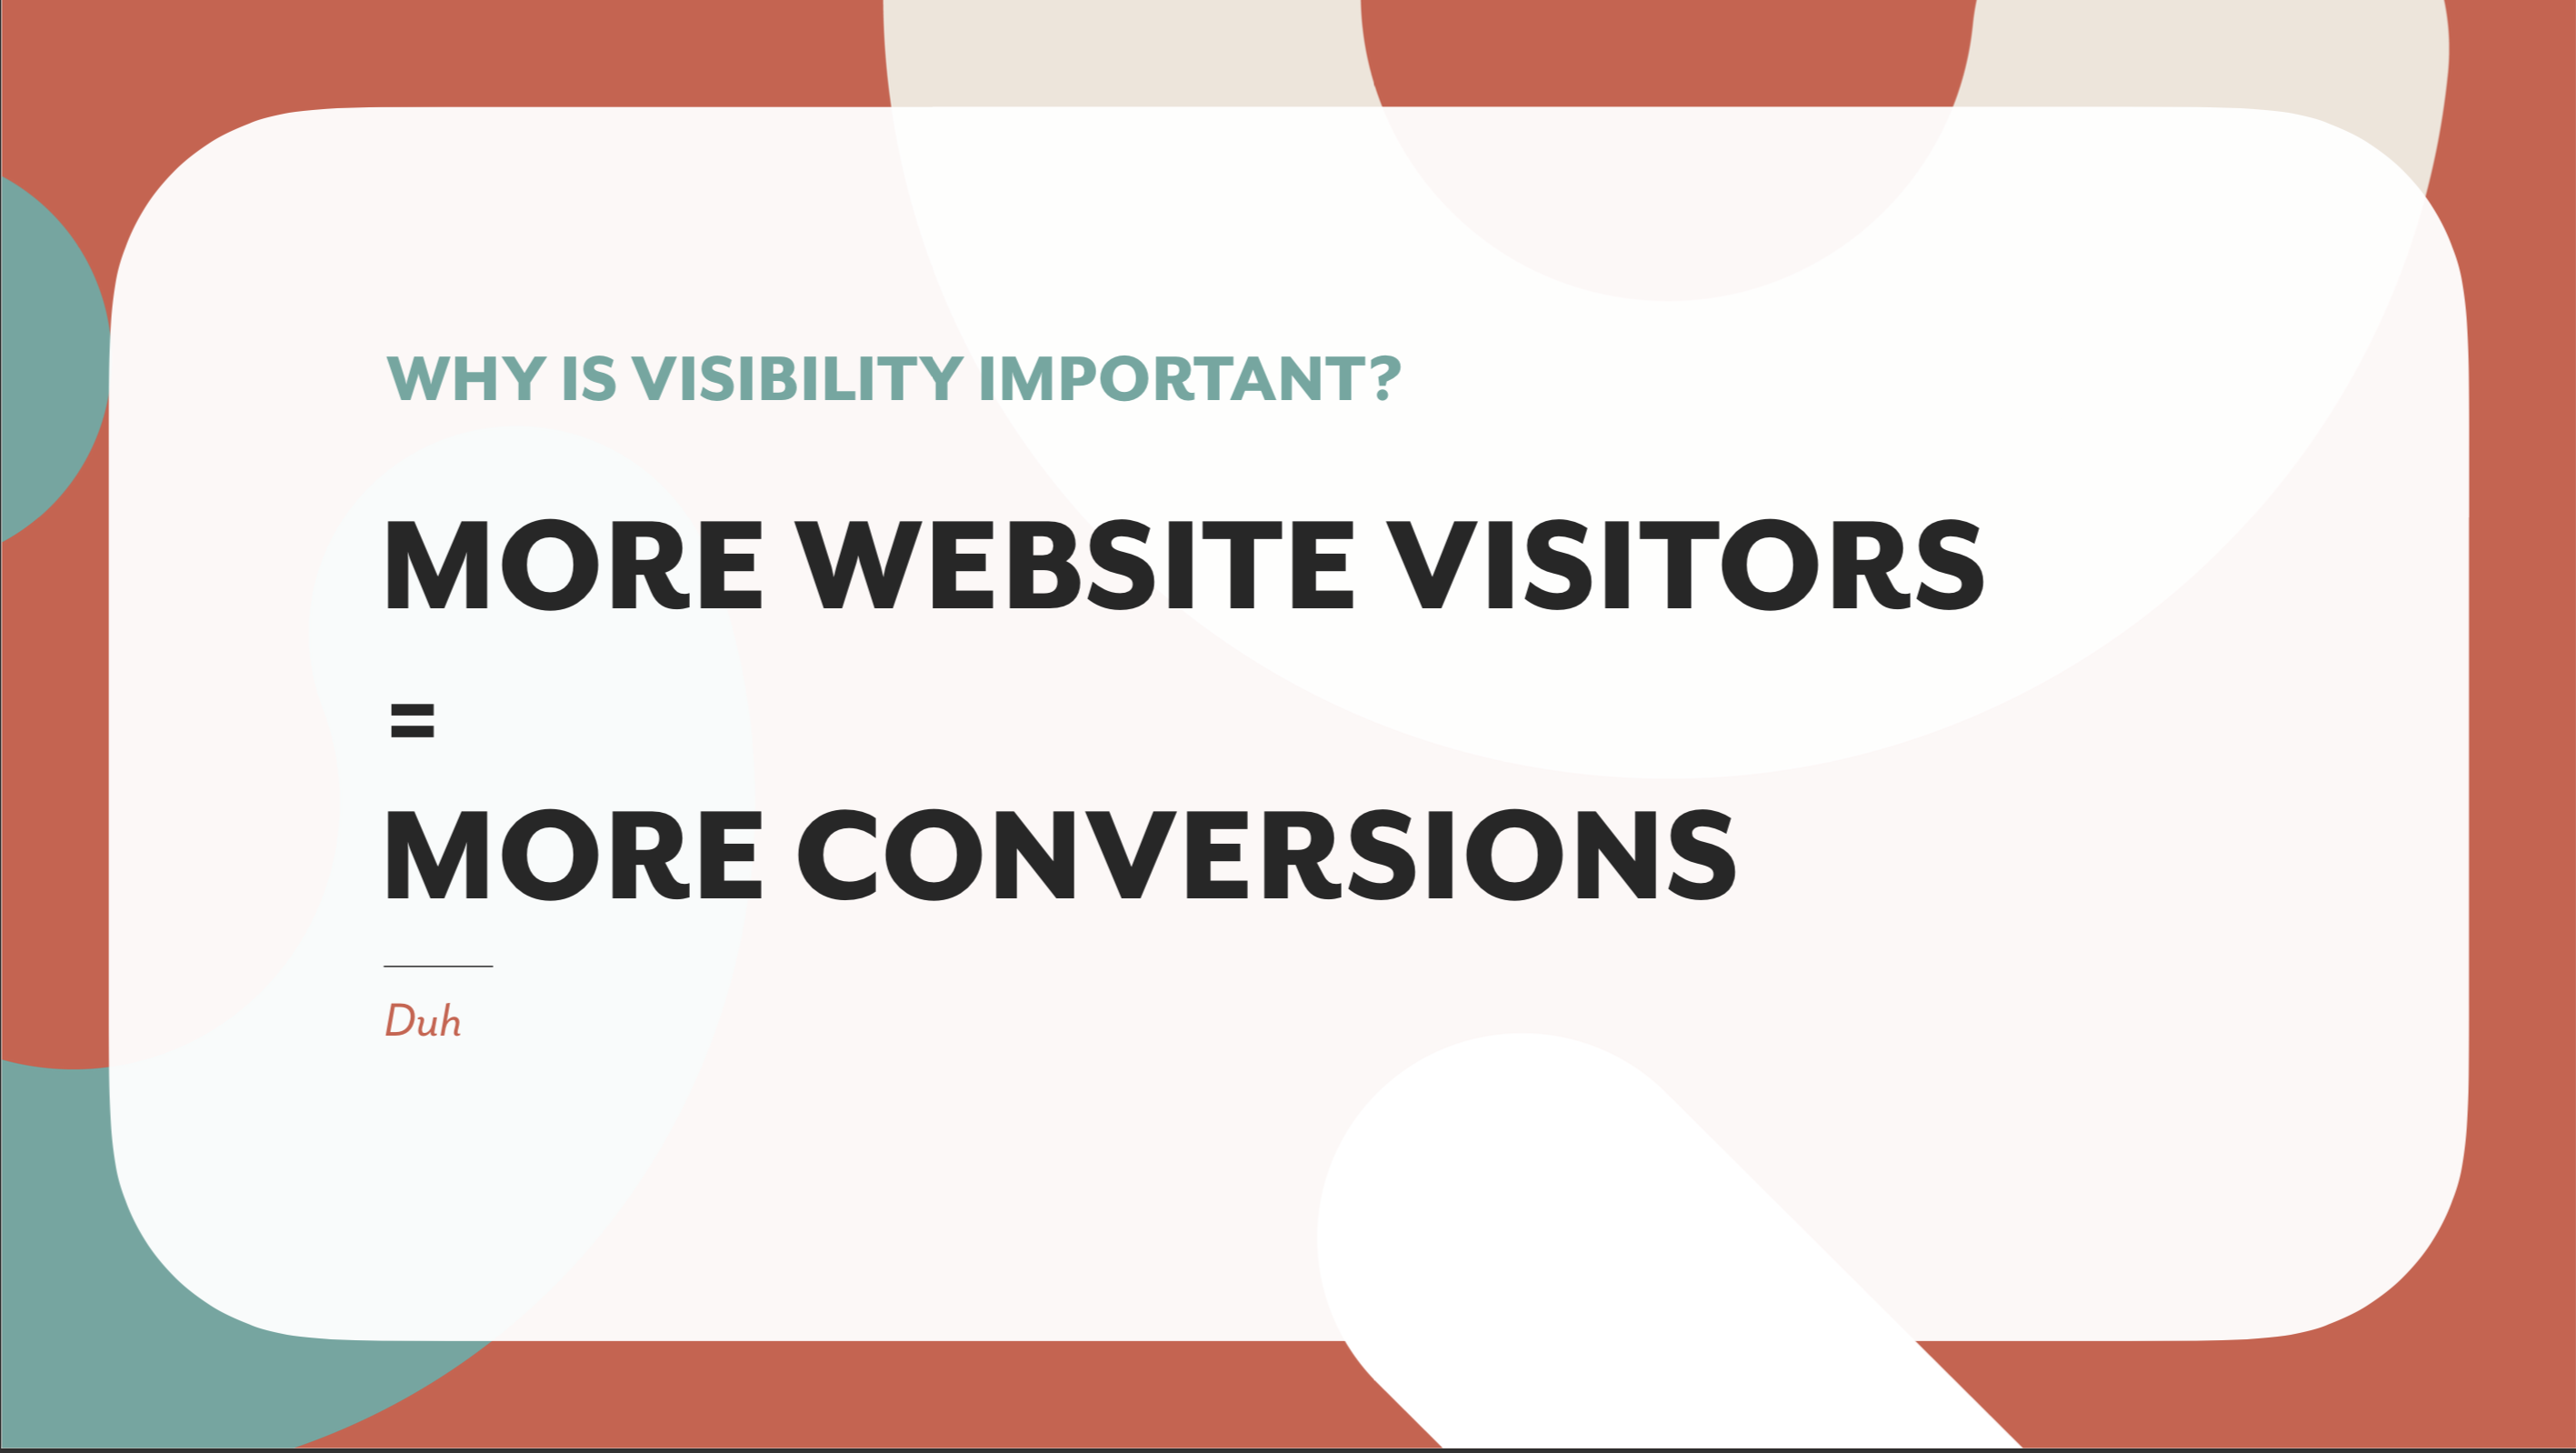 More visibility equals more conversions